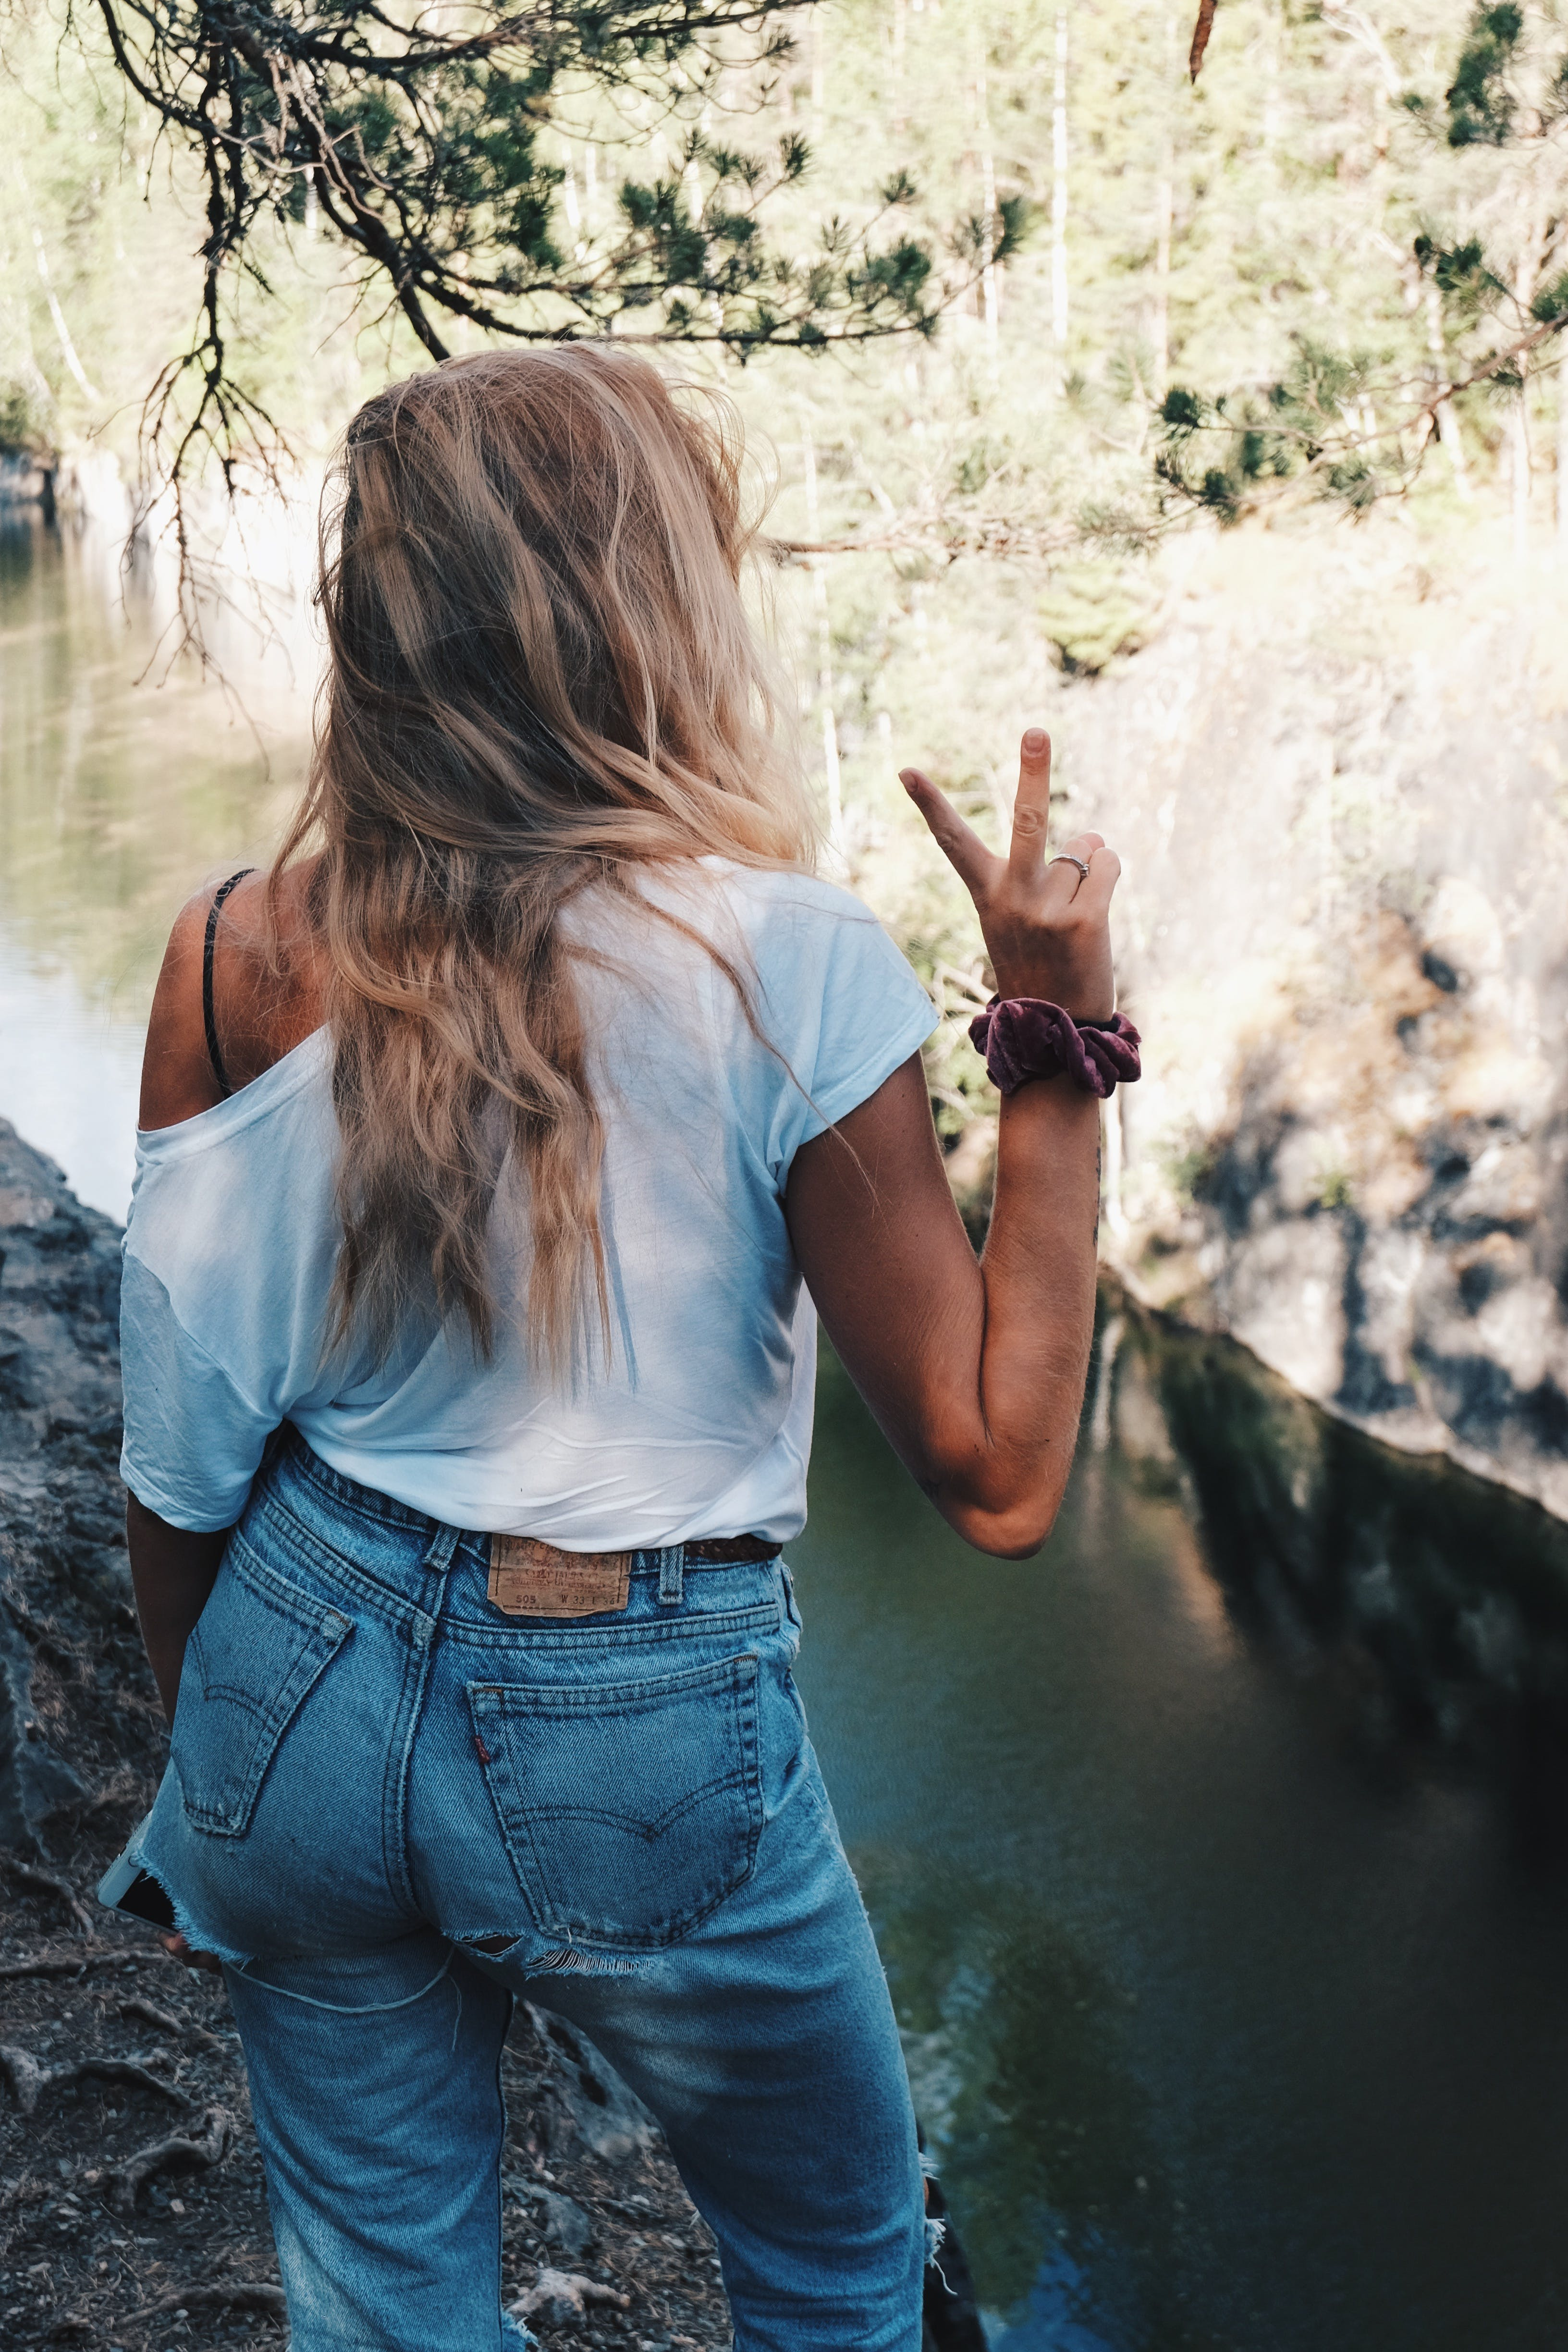 Woman in White Shirt Standing over the River Bank